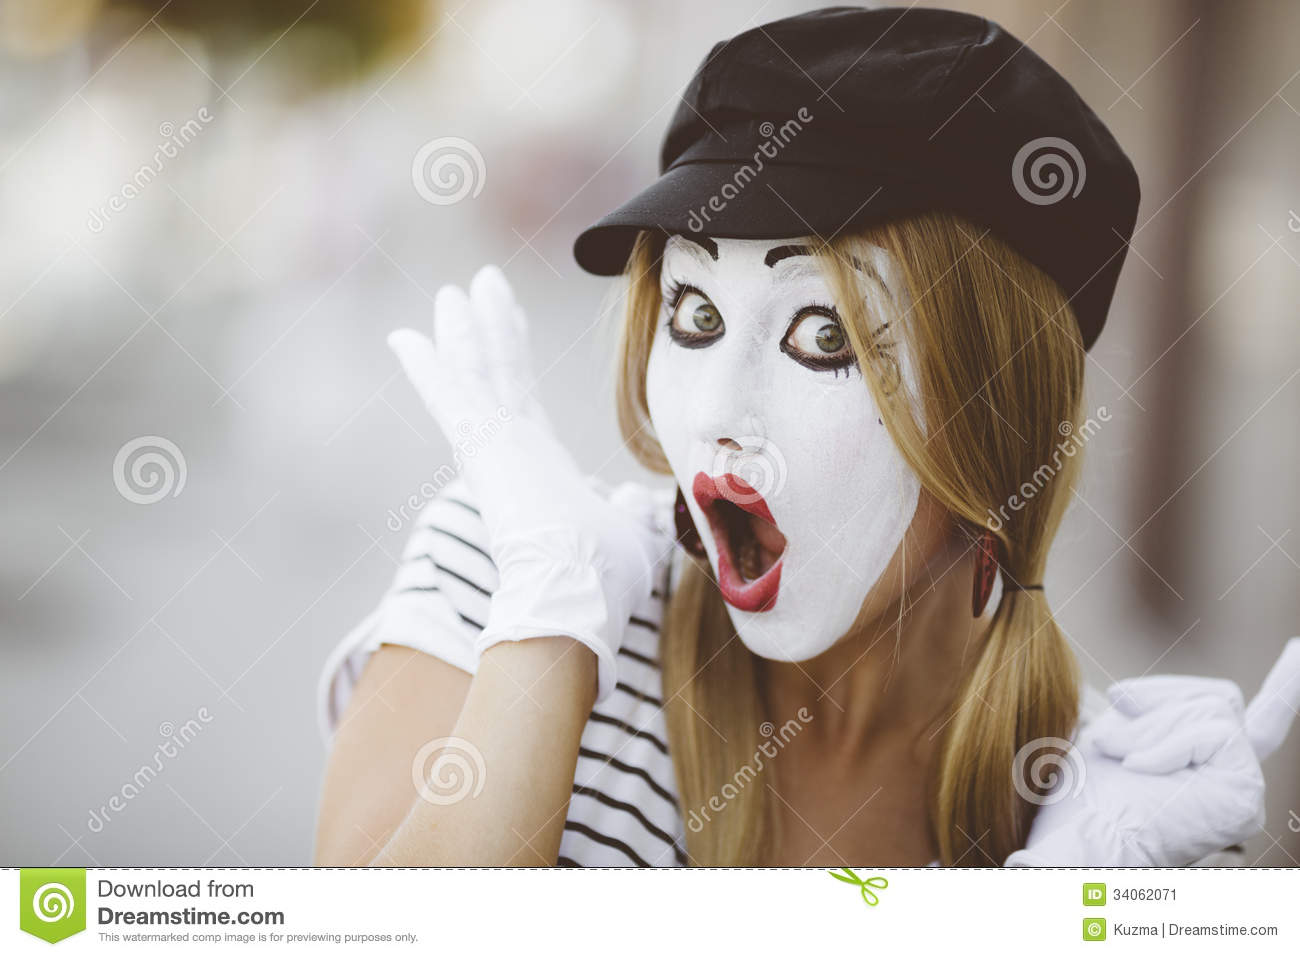 Portrait of mime with black hat and white gloves.